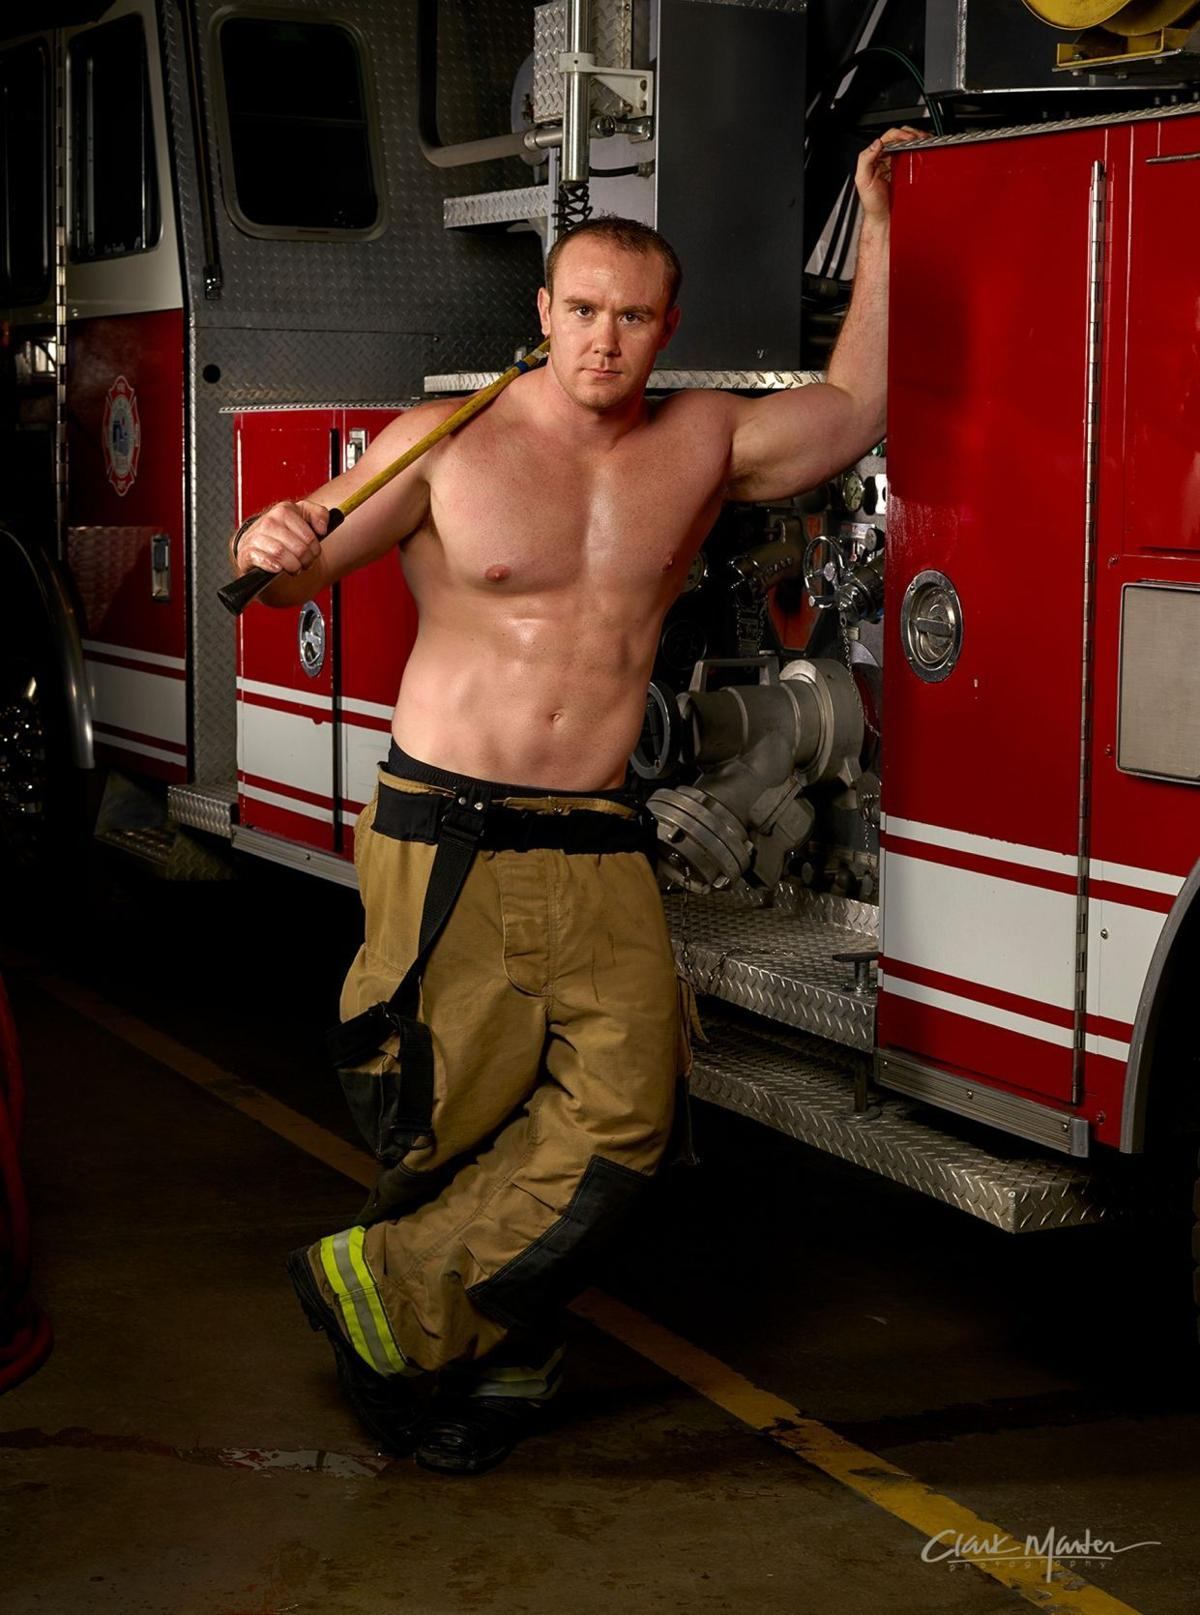 Fireman Calendar May : Billings firefighters remove their gear — and shirts for